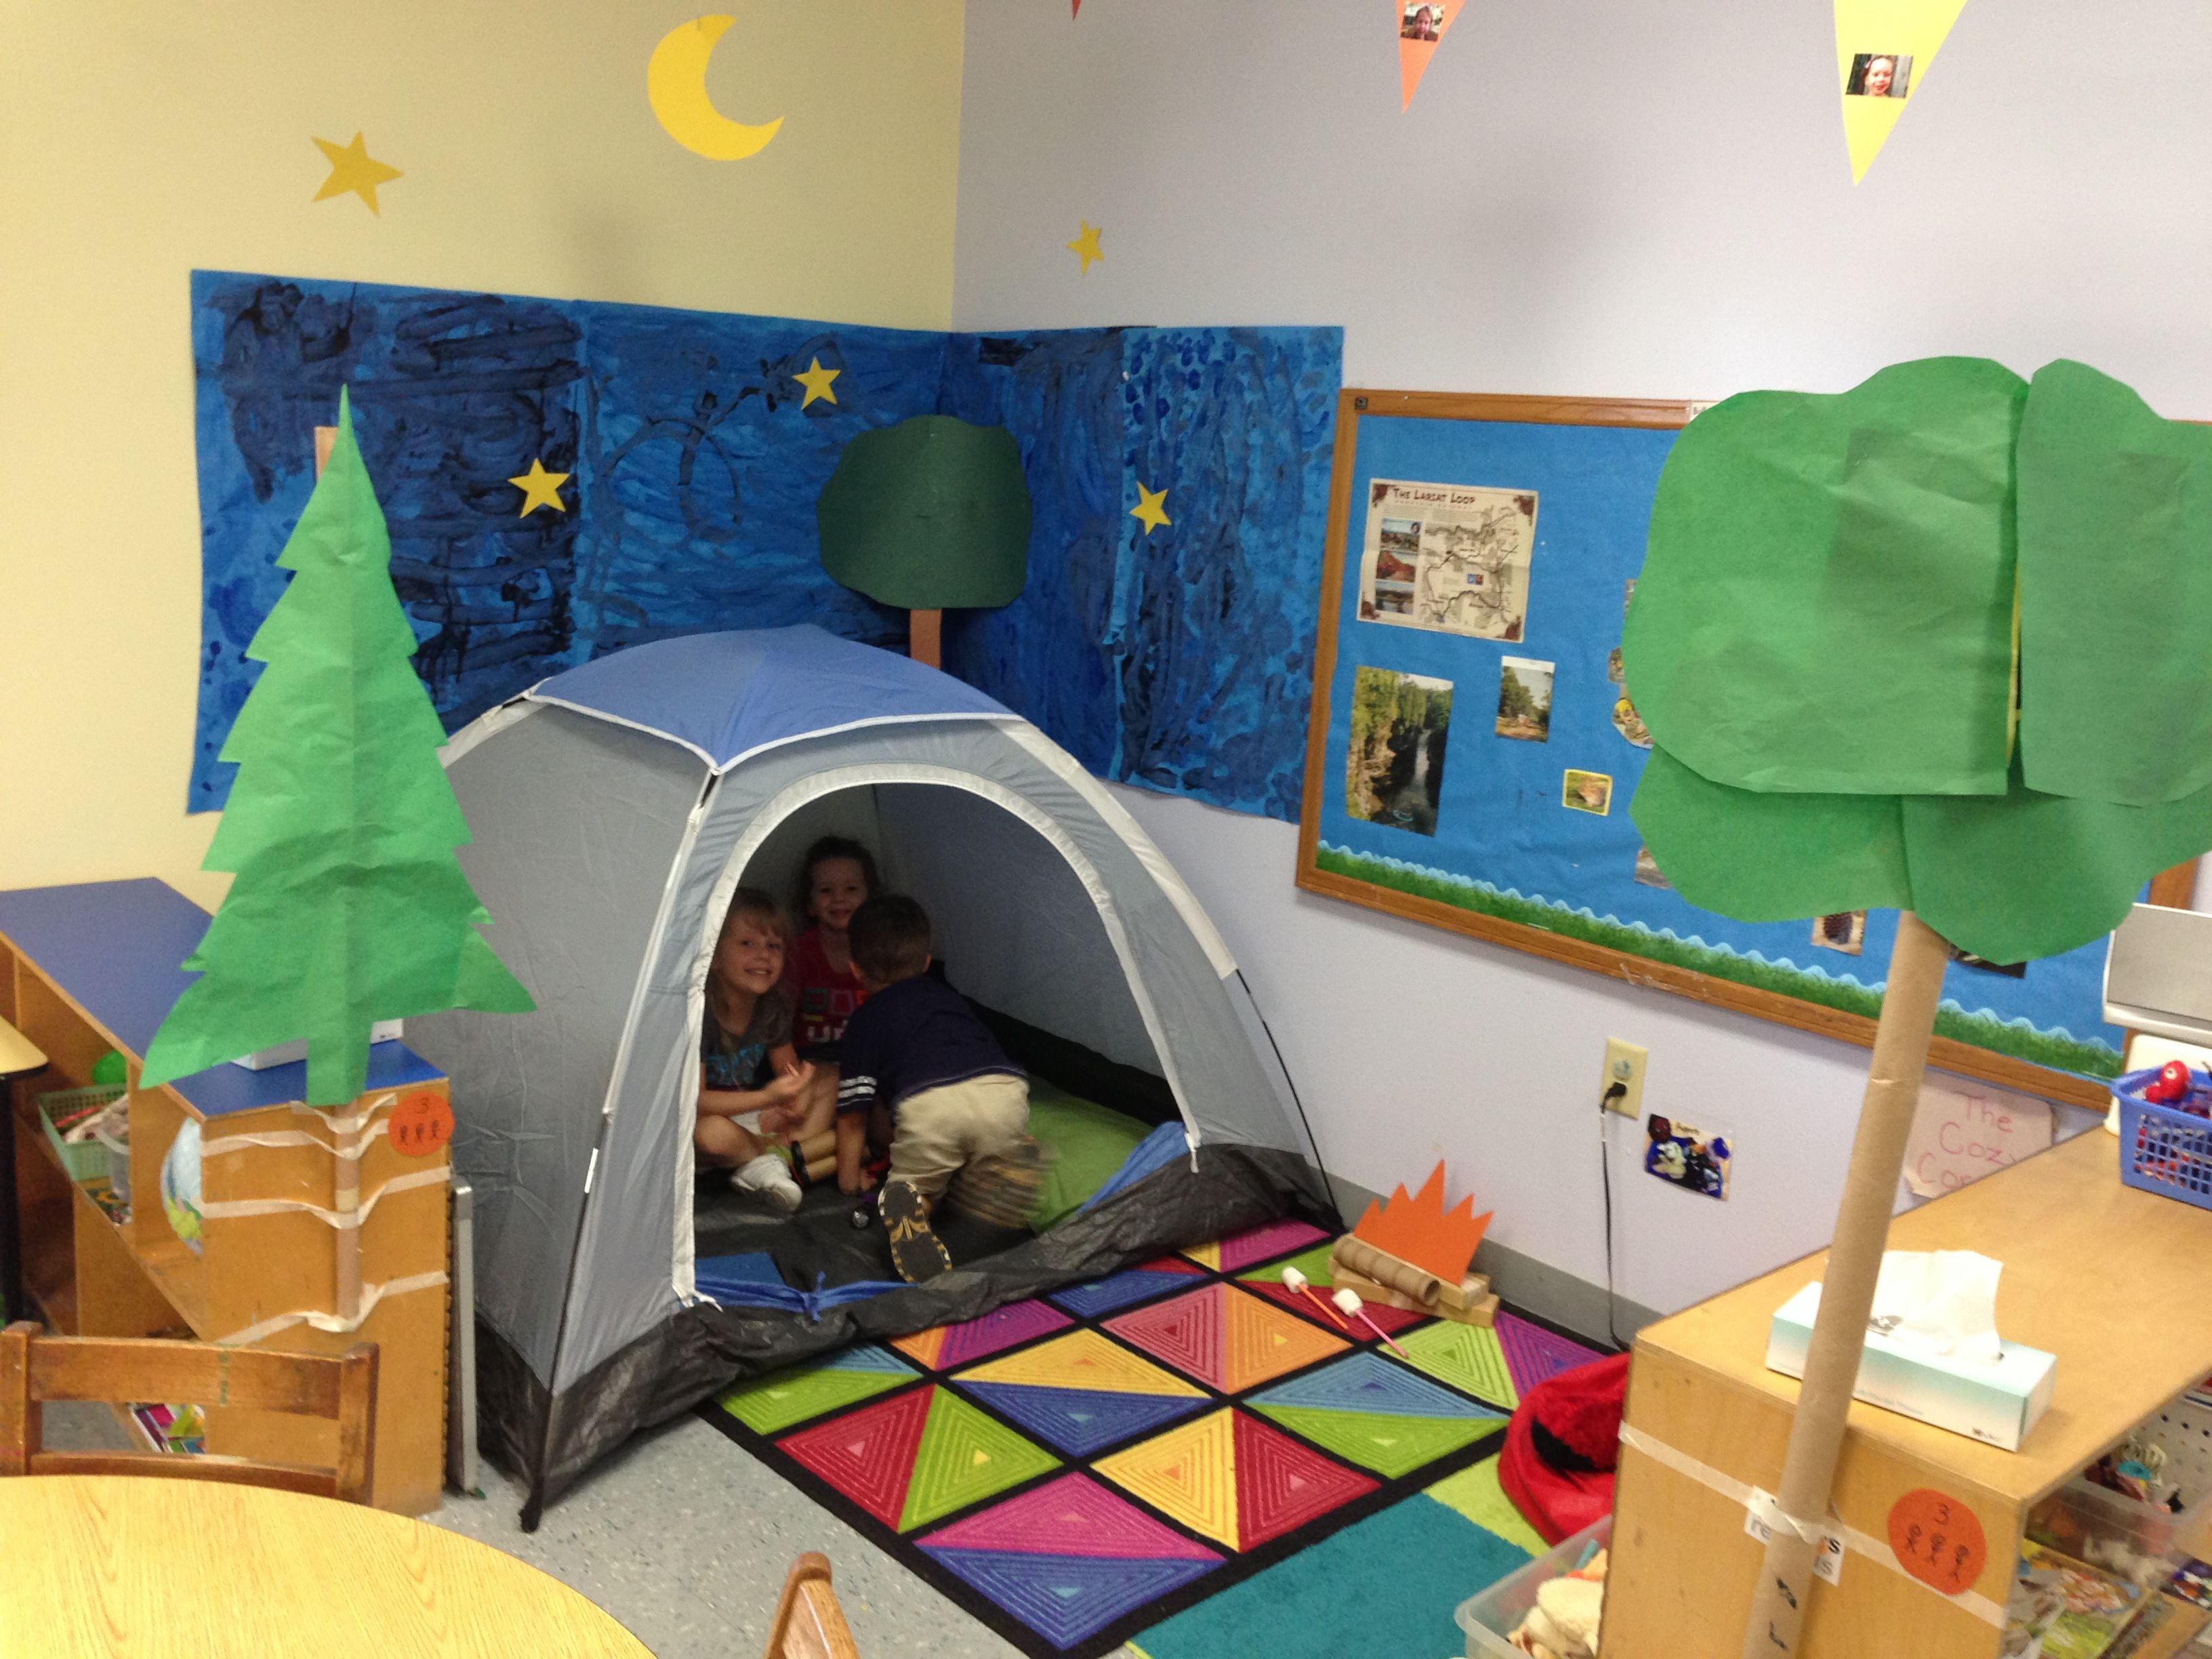 Classroom Theme Ideas For Preschool : Preschool camping theme for classroom i put up a tent